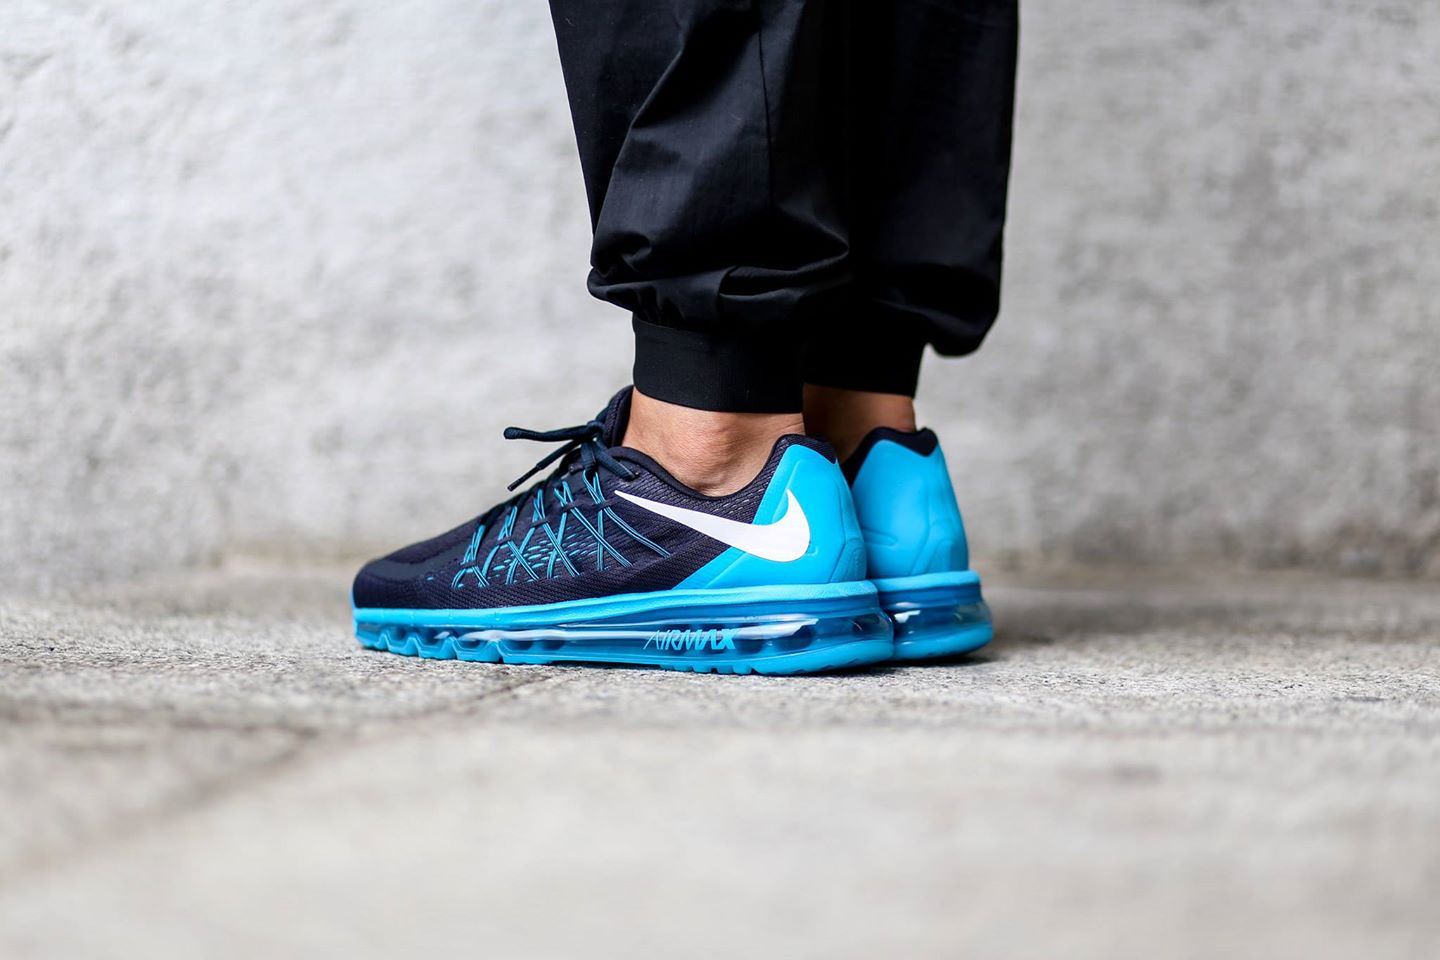 Nike Air Max 2015 Dark Obsidian White Blue Lagoon (1)